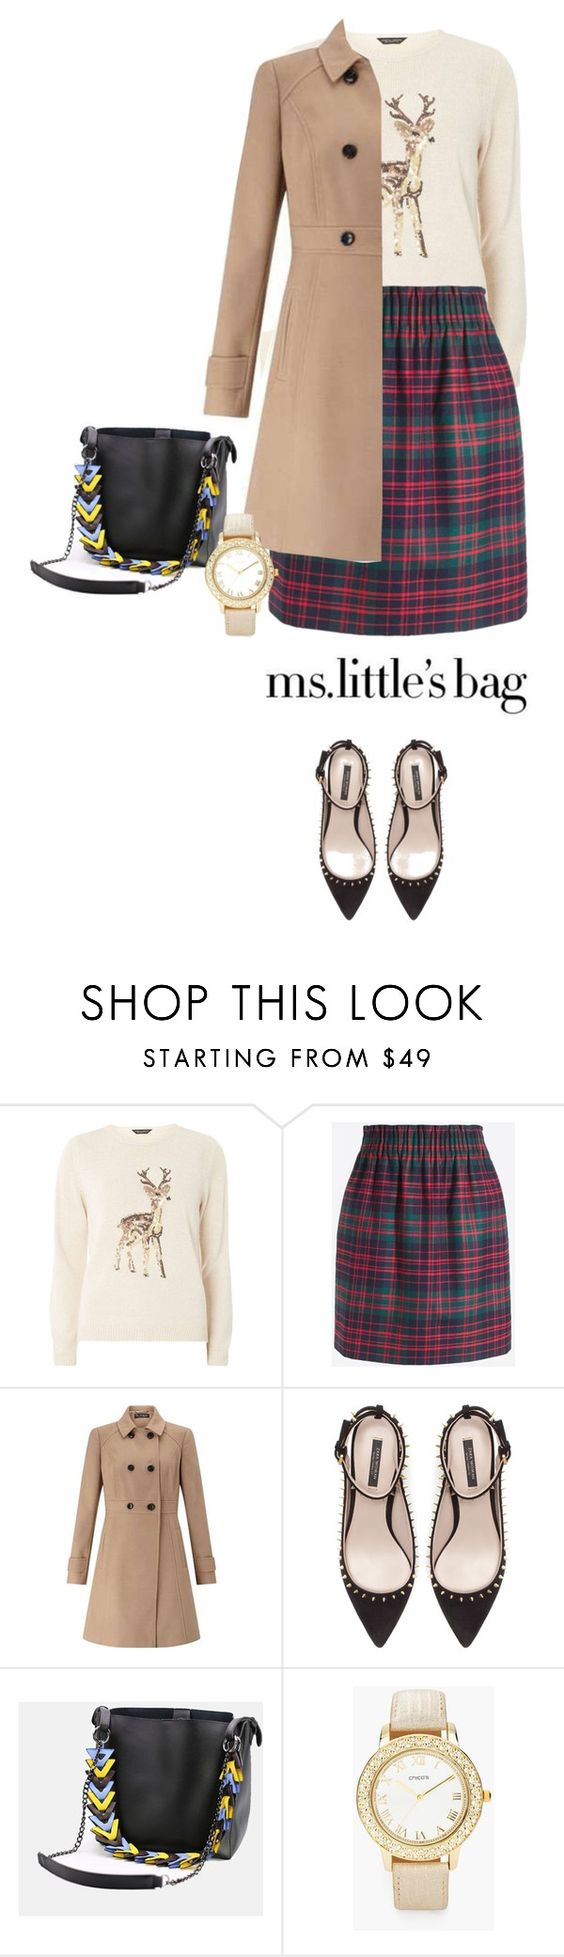 """""""Little Lady"""" by kts-desilva ❤ liked on Polyvore featuring Dorothy Perkins, J.Crew, Miss Selfridge, Zara and Chico's"""